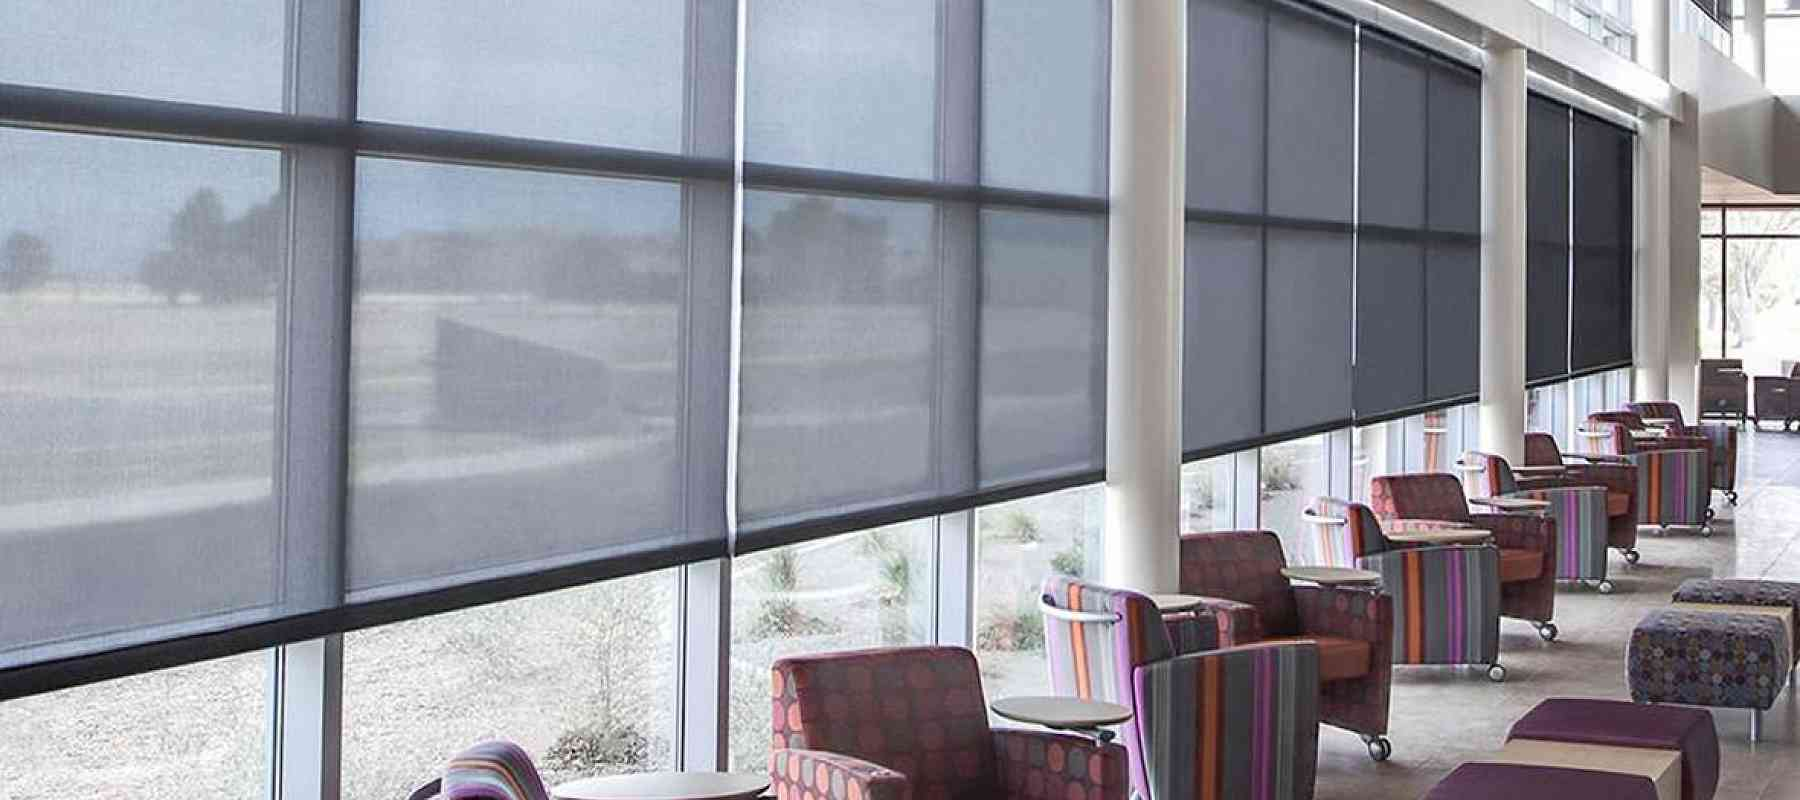 Solar Shades Offer Versatile Lighting and Privacy Options